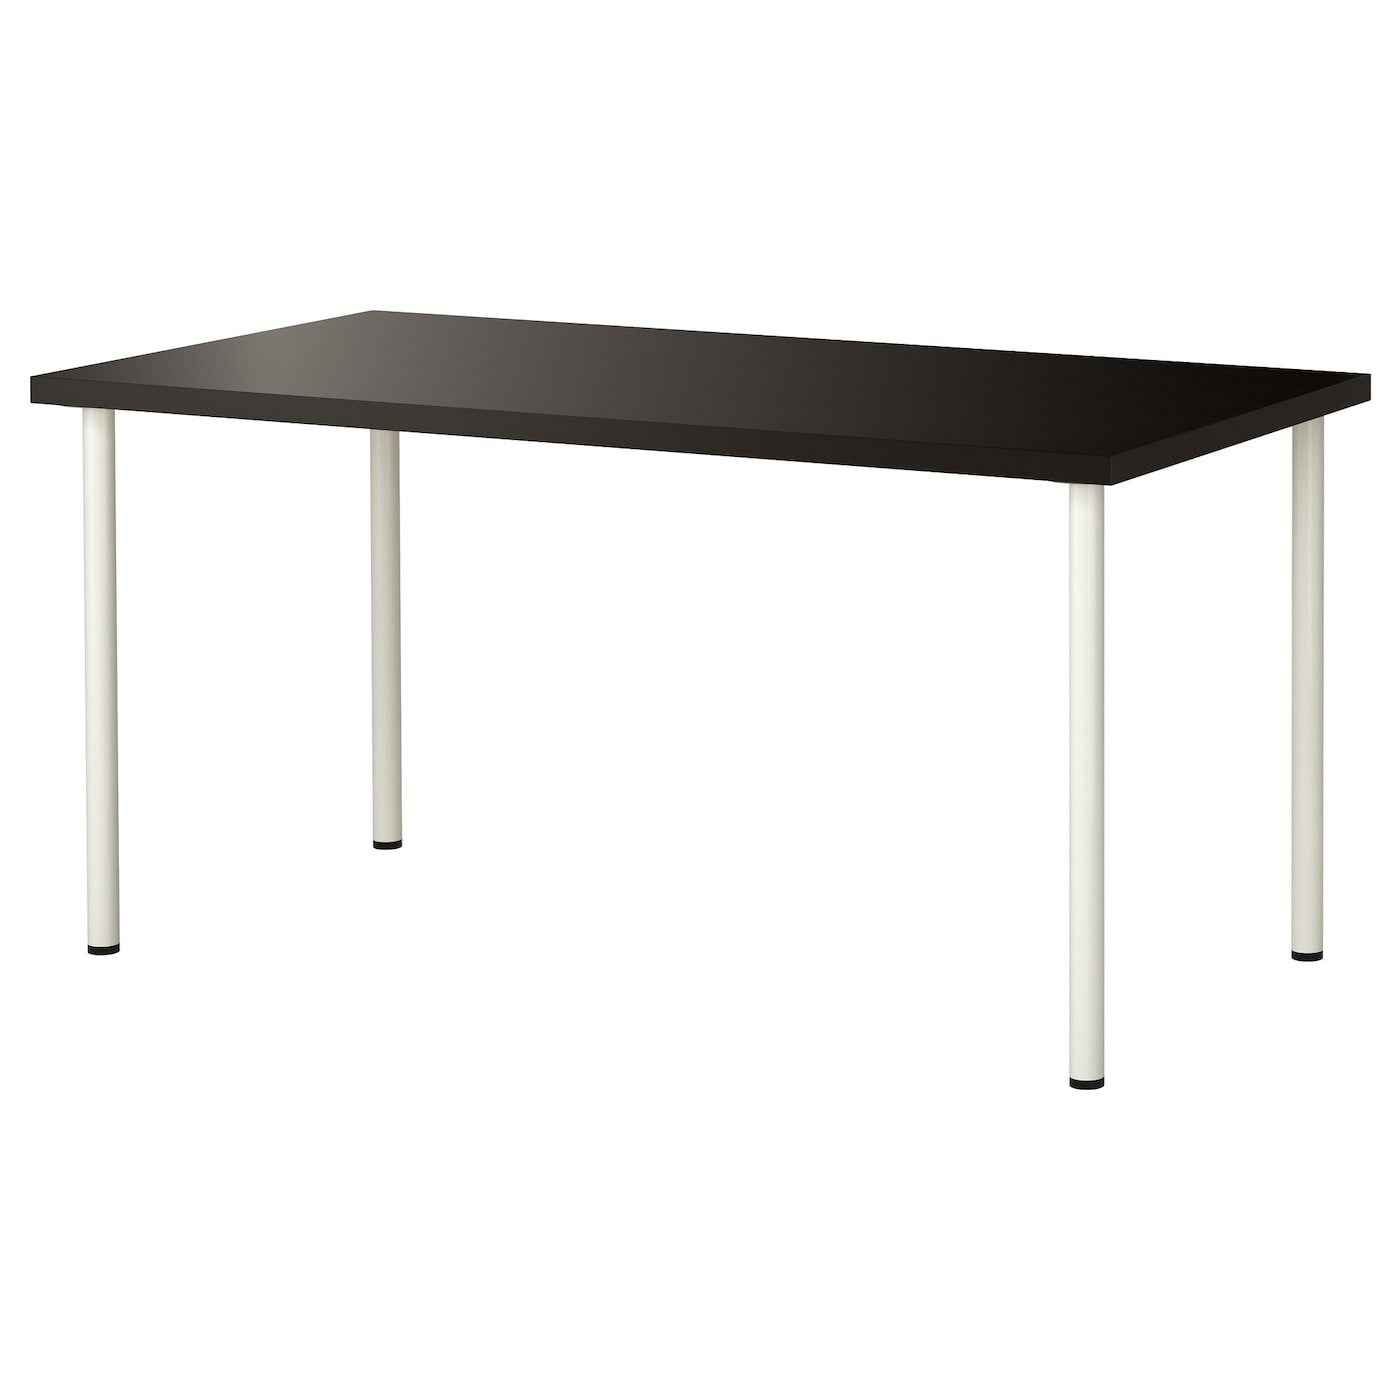 Adils linnmon table black brown white 150x75 cm ikea for Ikea desk black